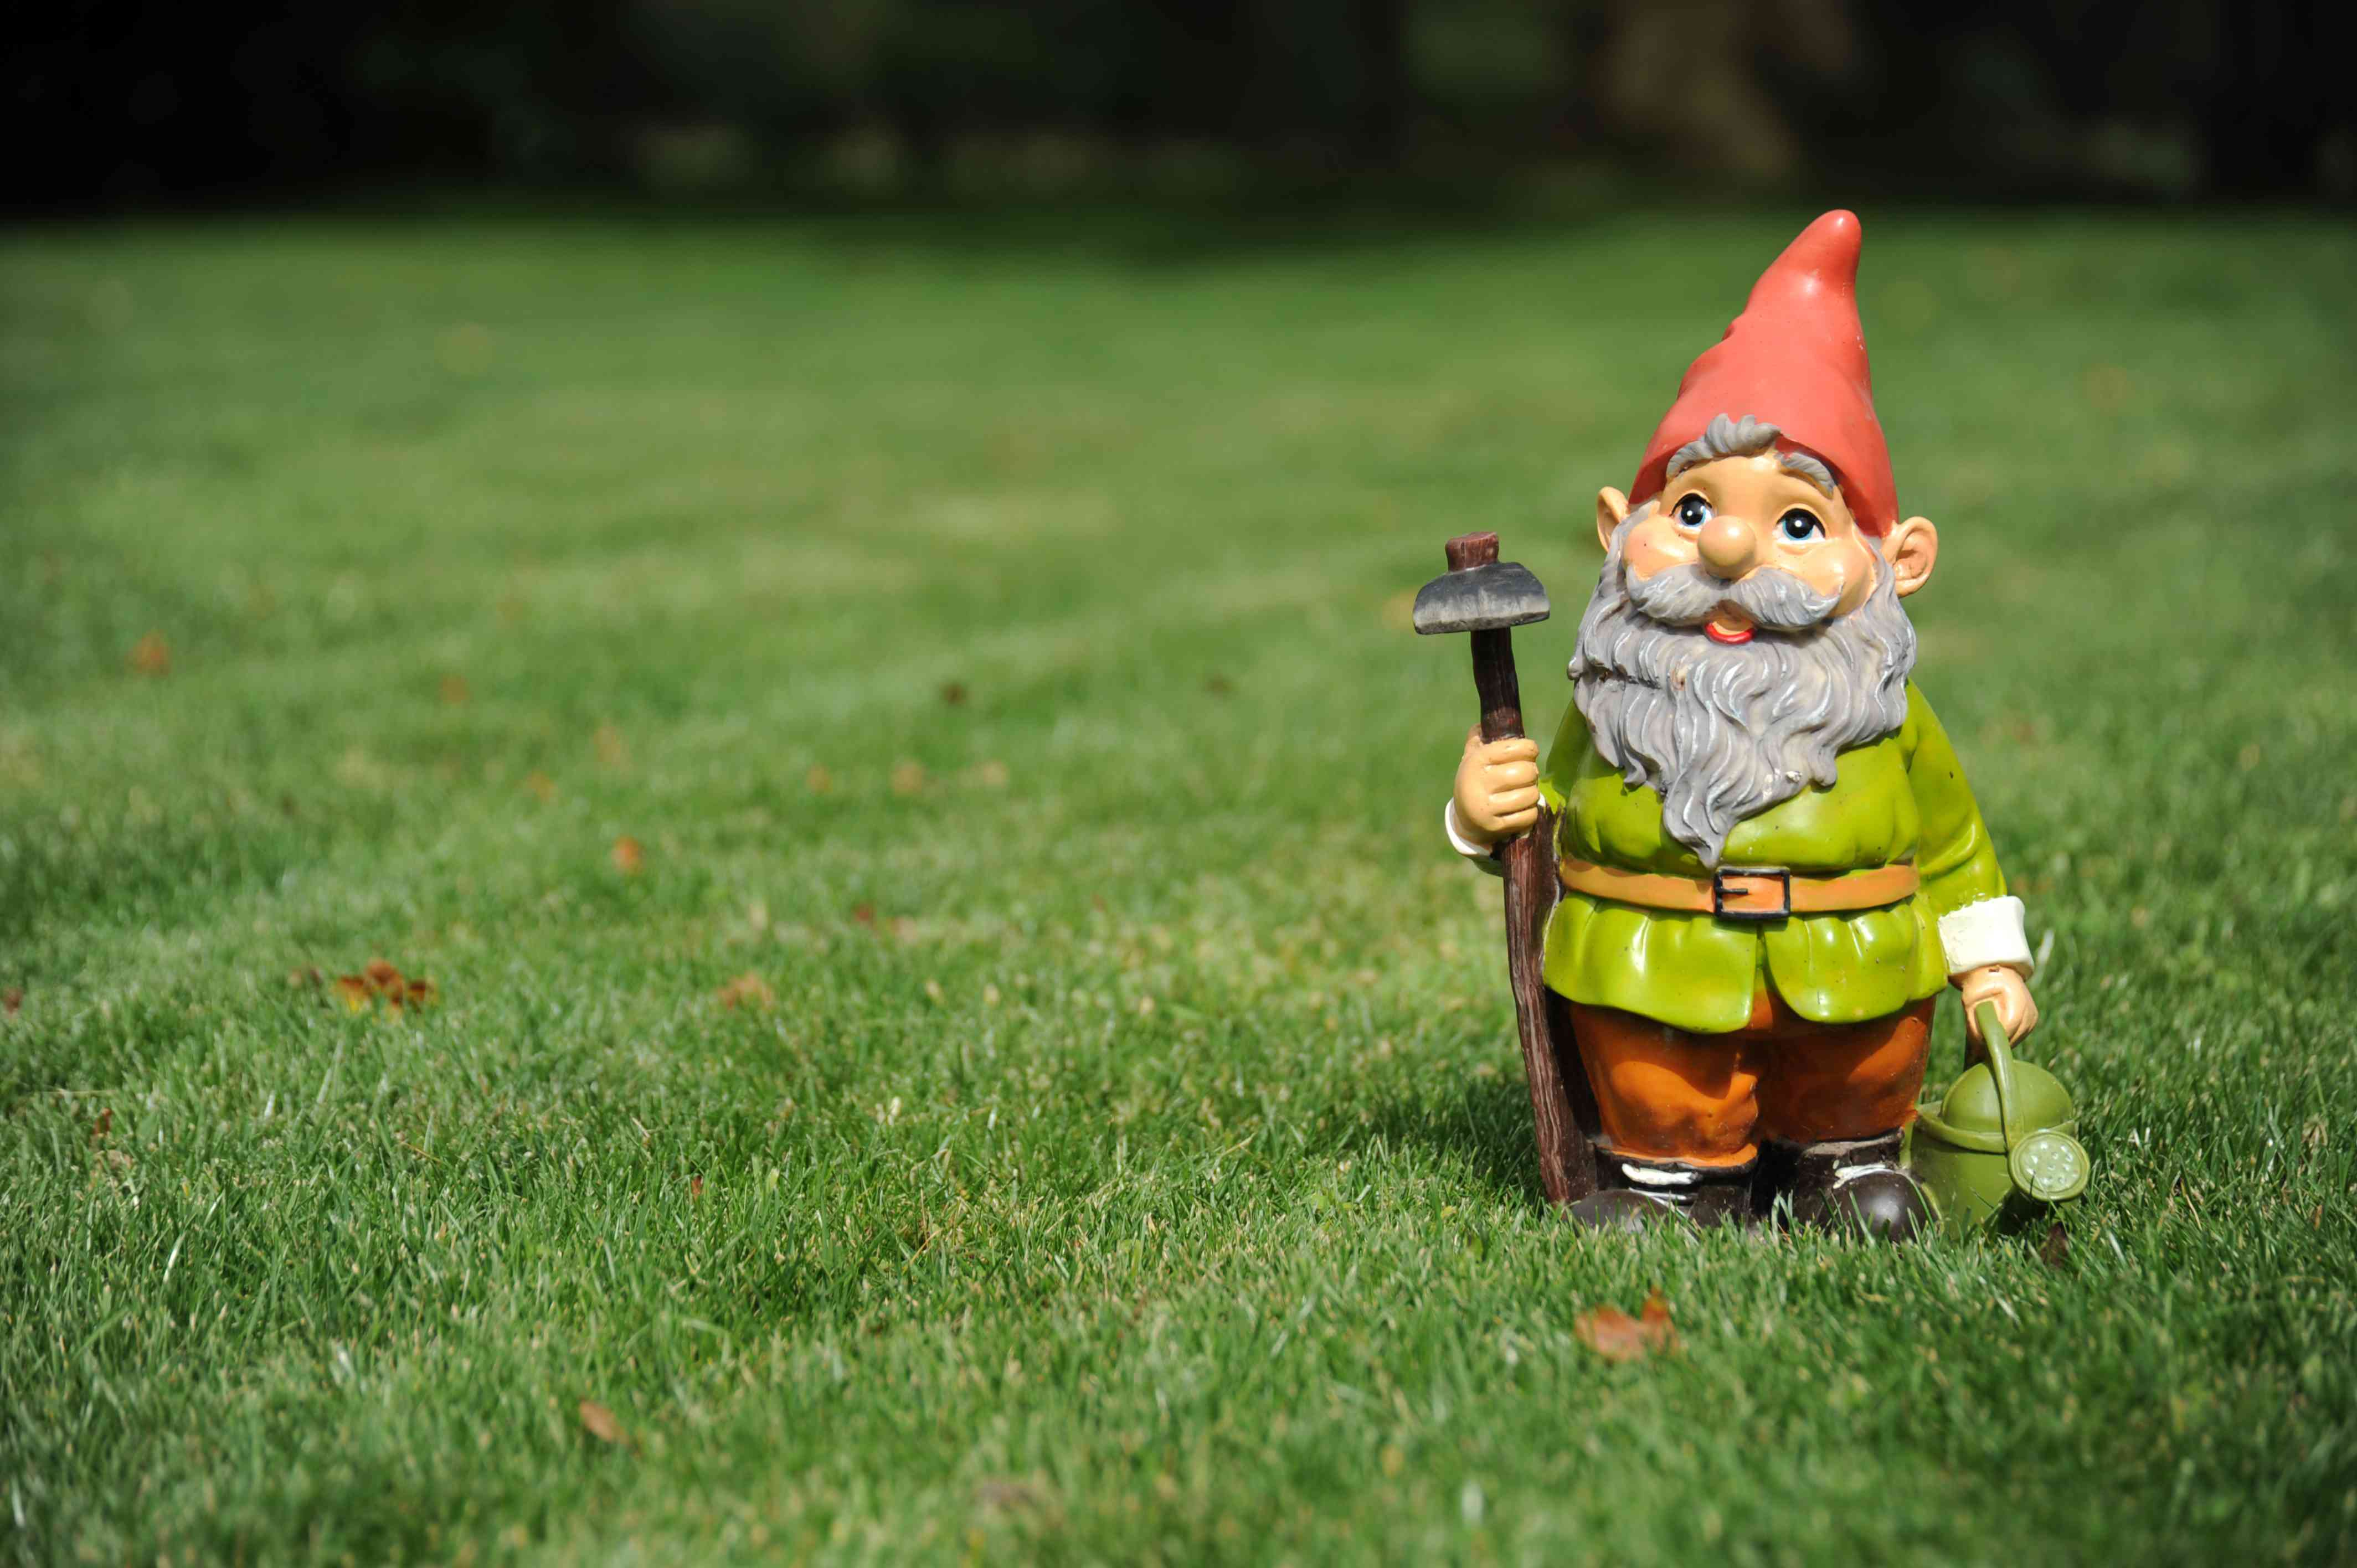 Close-up of garden gnome holding pickax and watering can